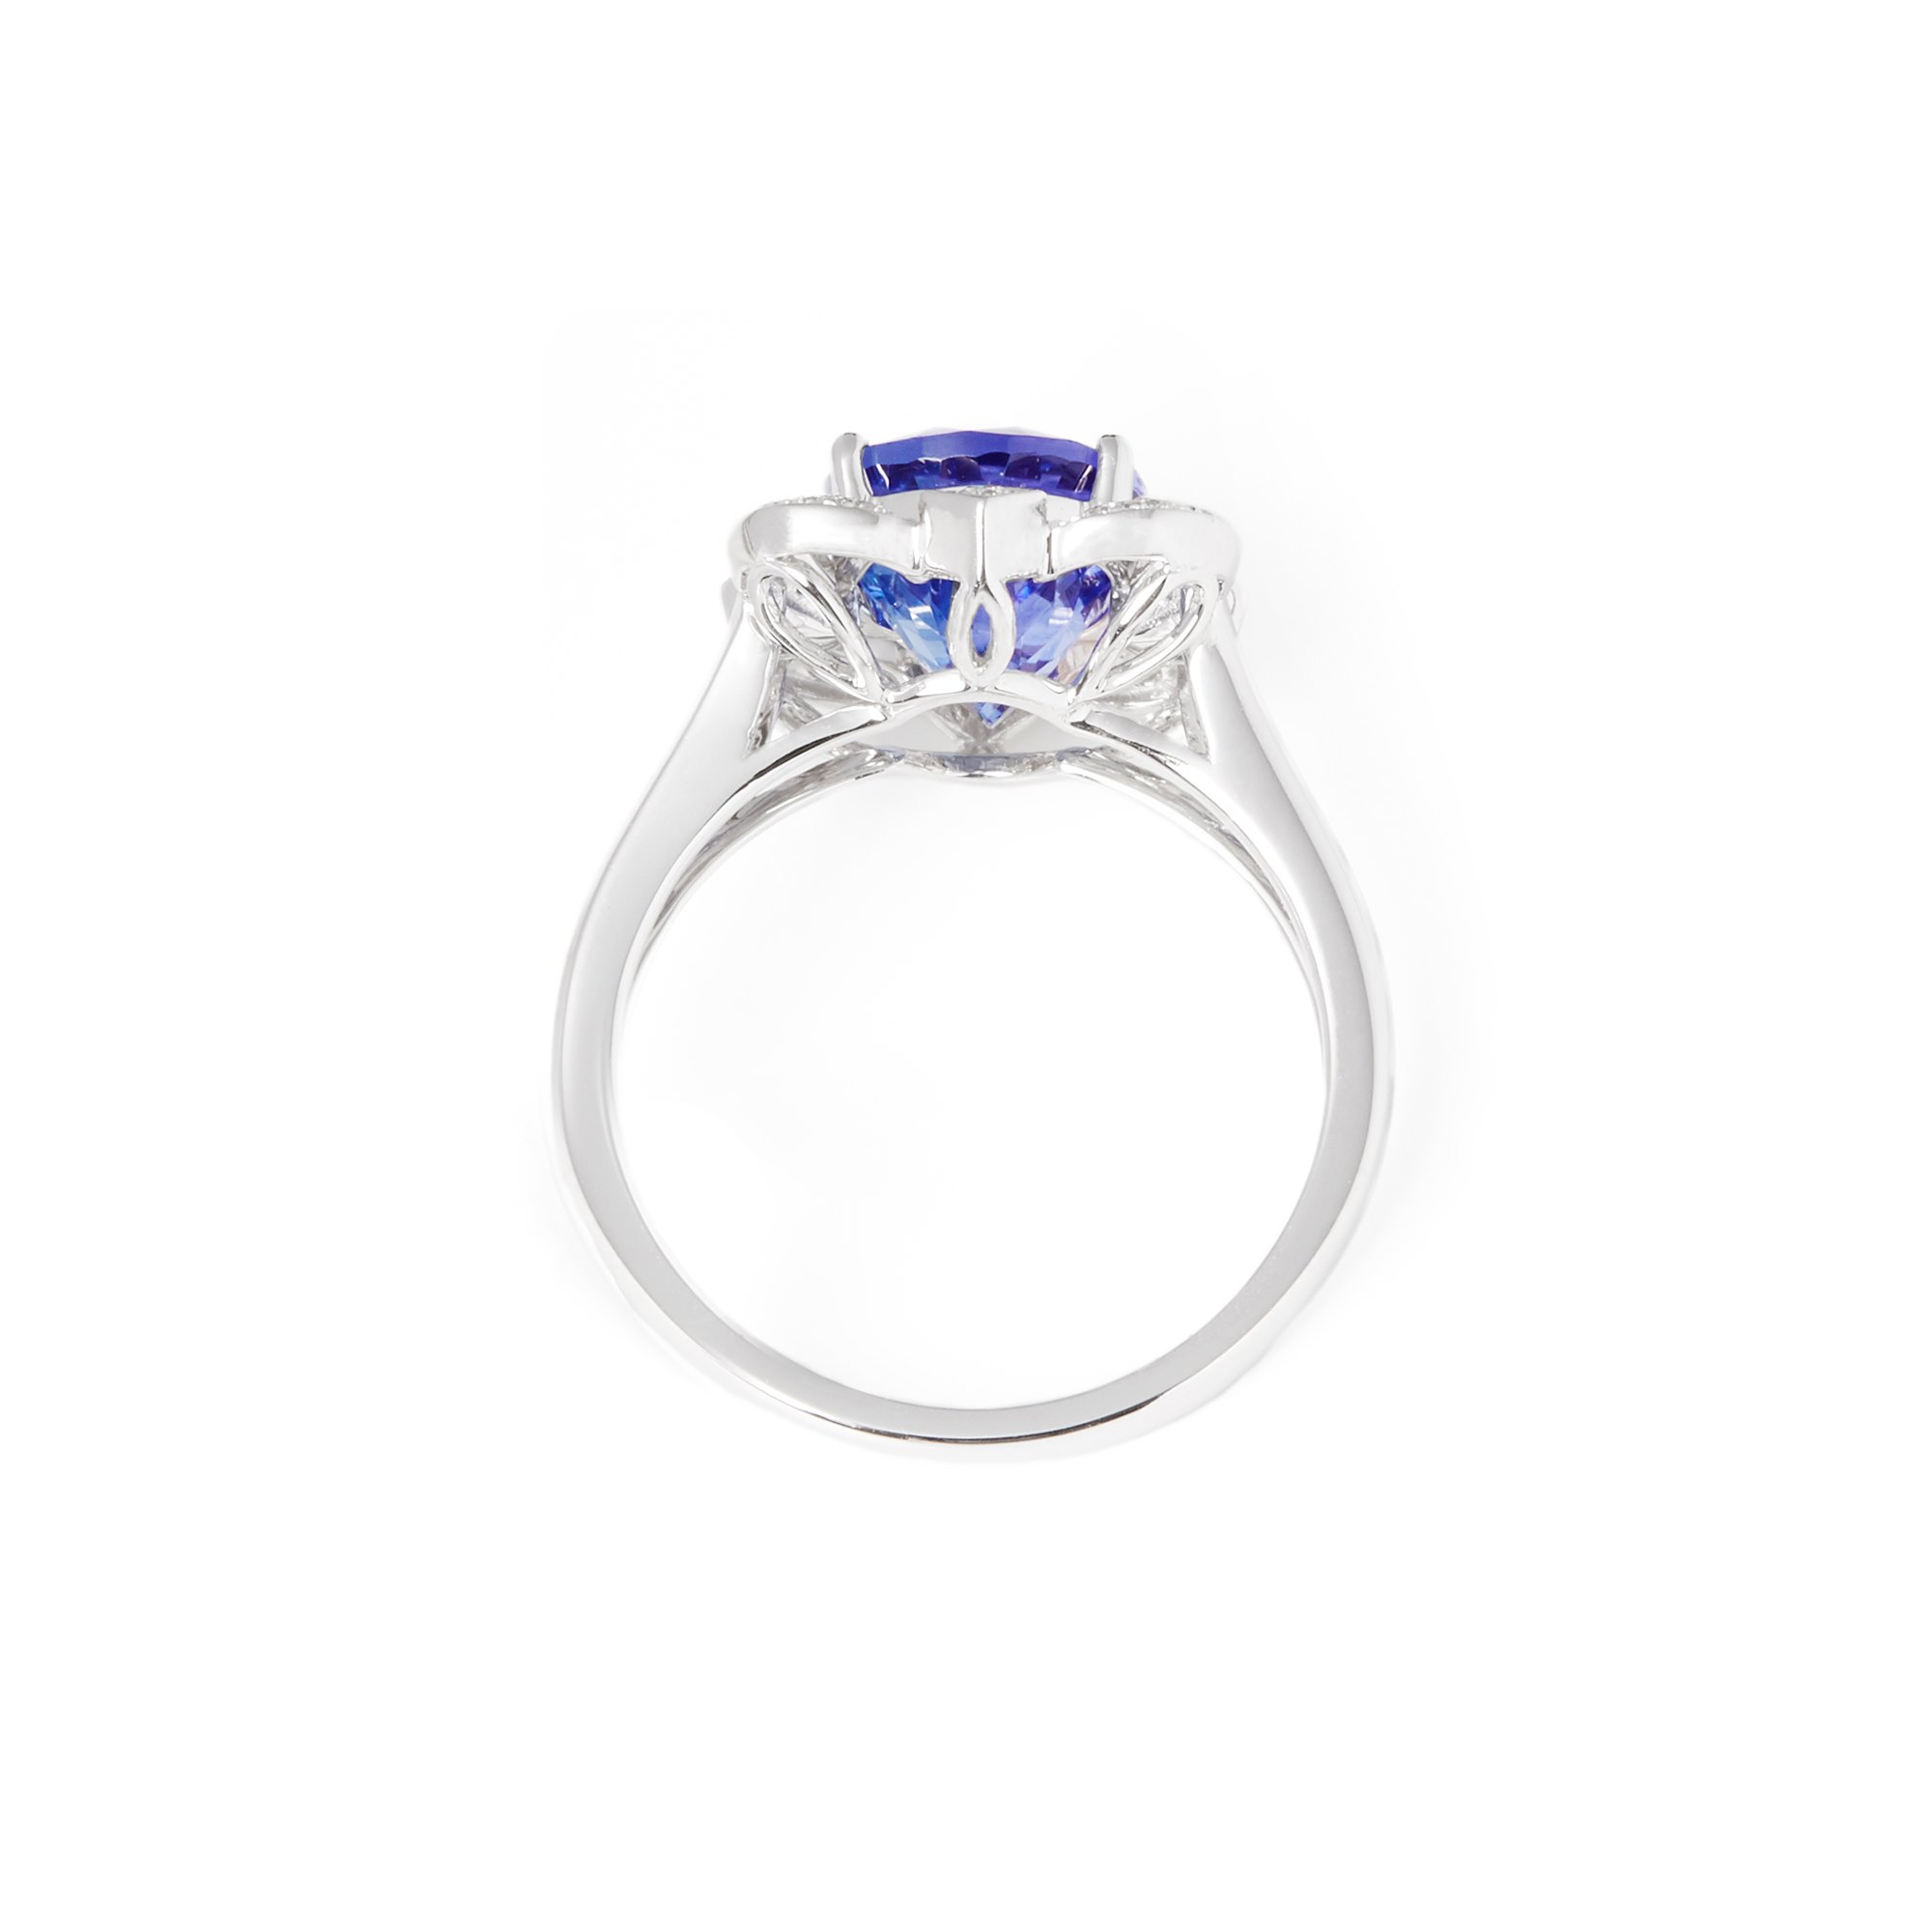 David Jerome Certified 3.71ct Untreated Oval Cut Tanzanite and Diamond Ring